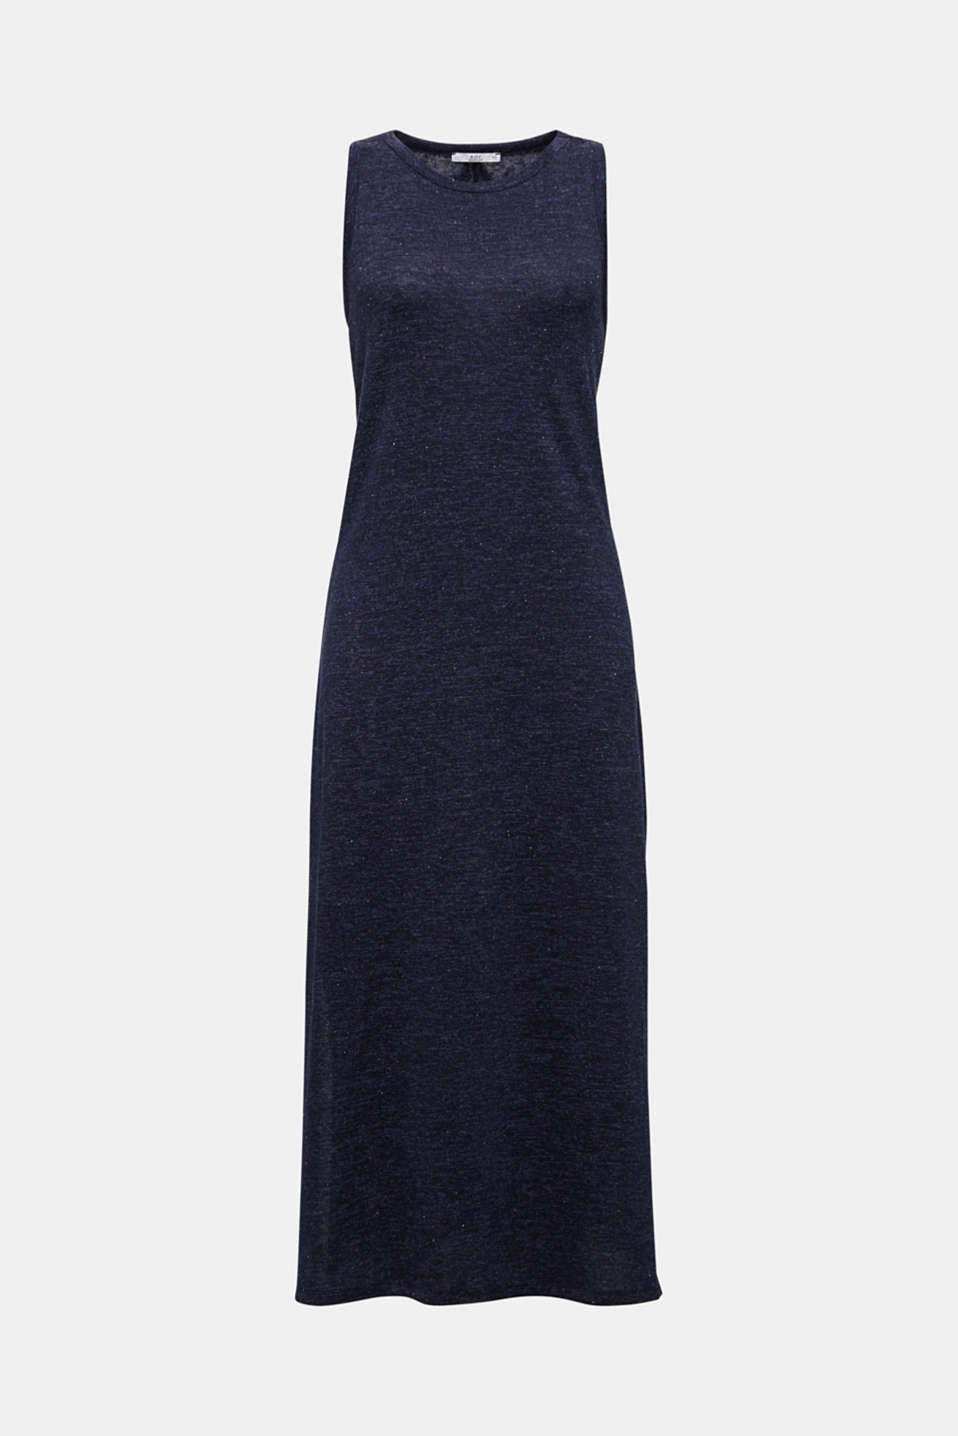 Jersey dress with a racer back, NAVY, detail image number 6